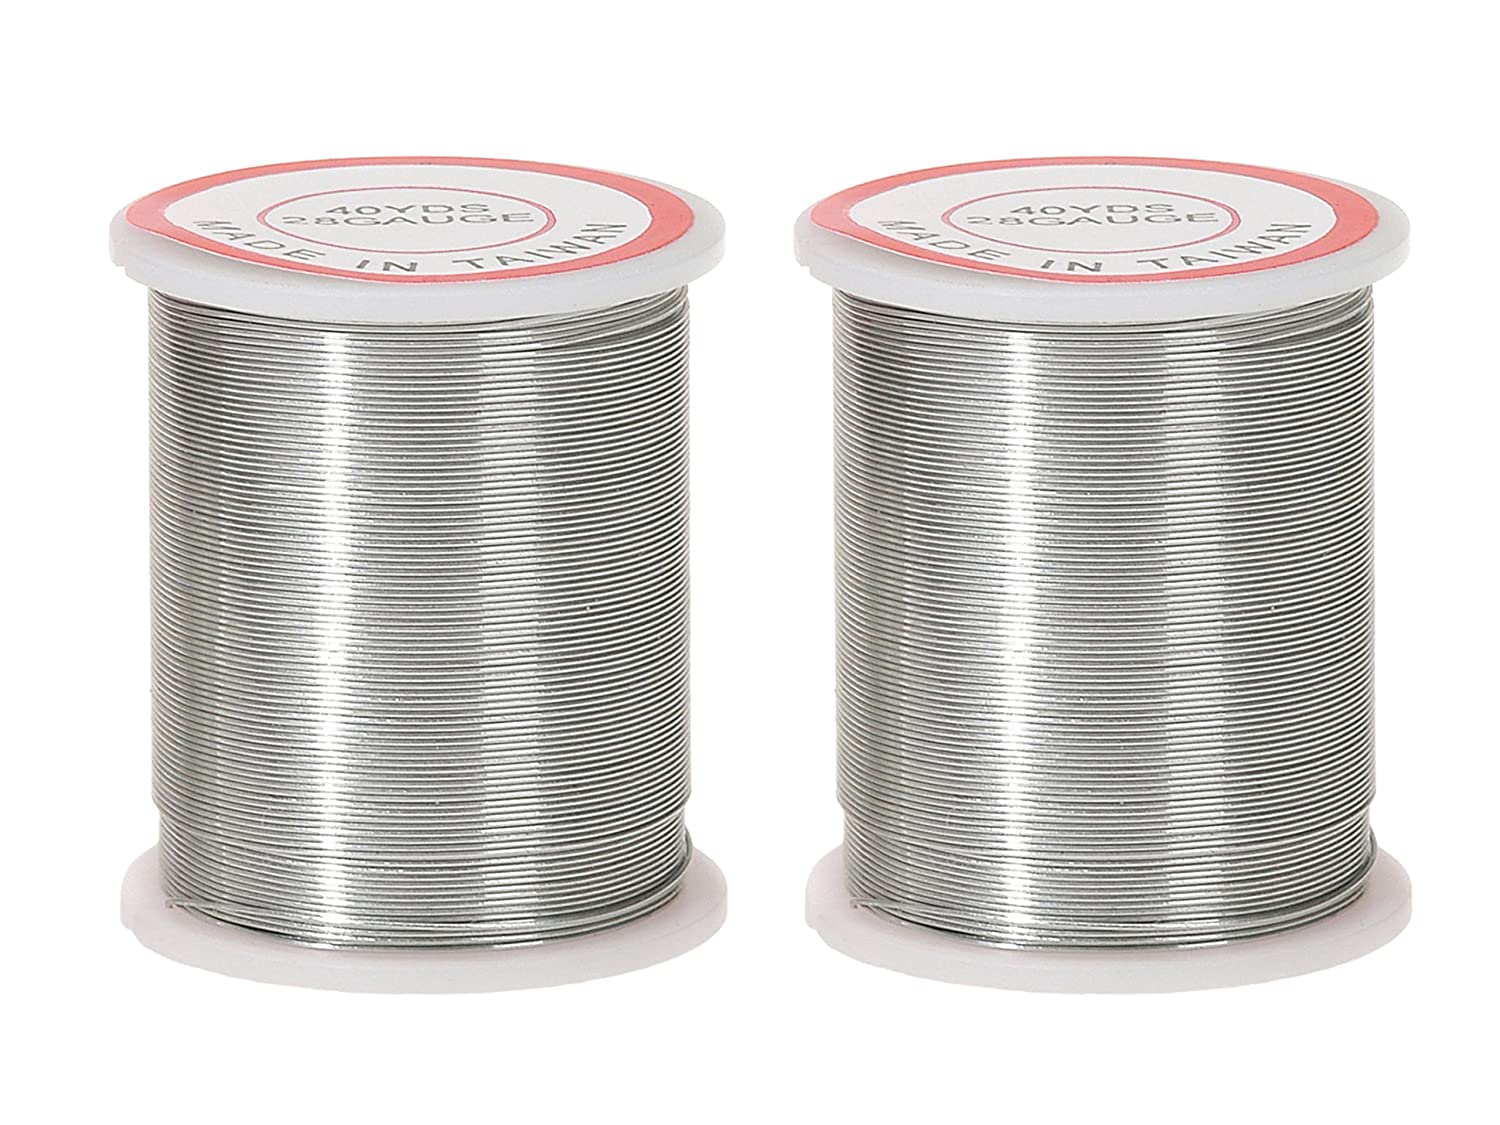 Amazon.com: Darice 28-Gauge Beading Wire, 40-Yard, Silver